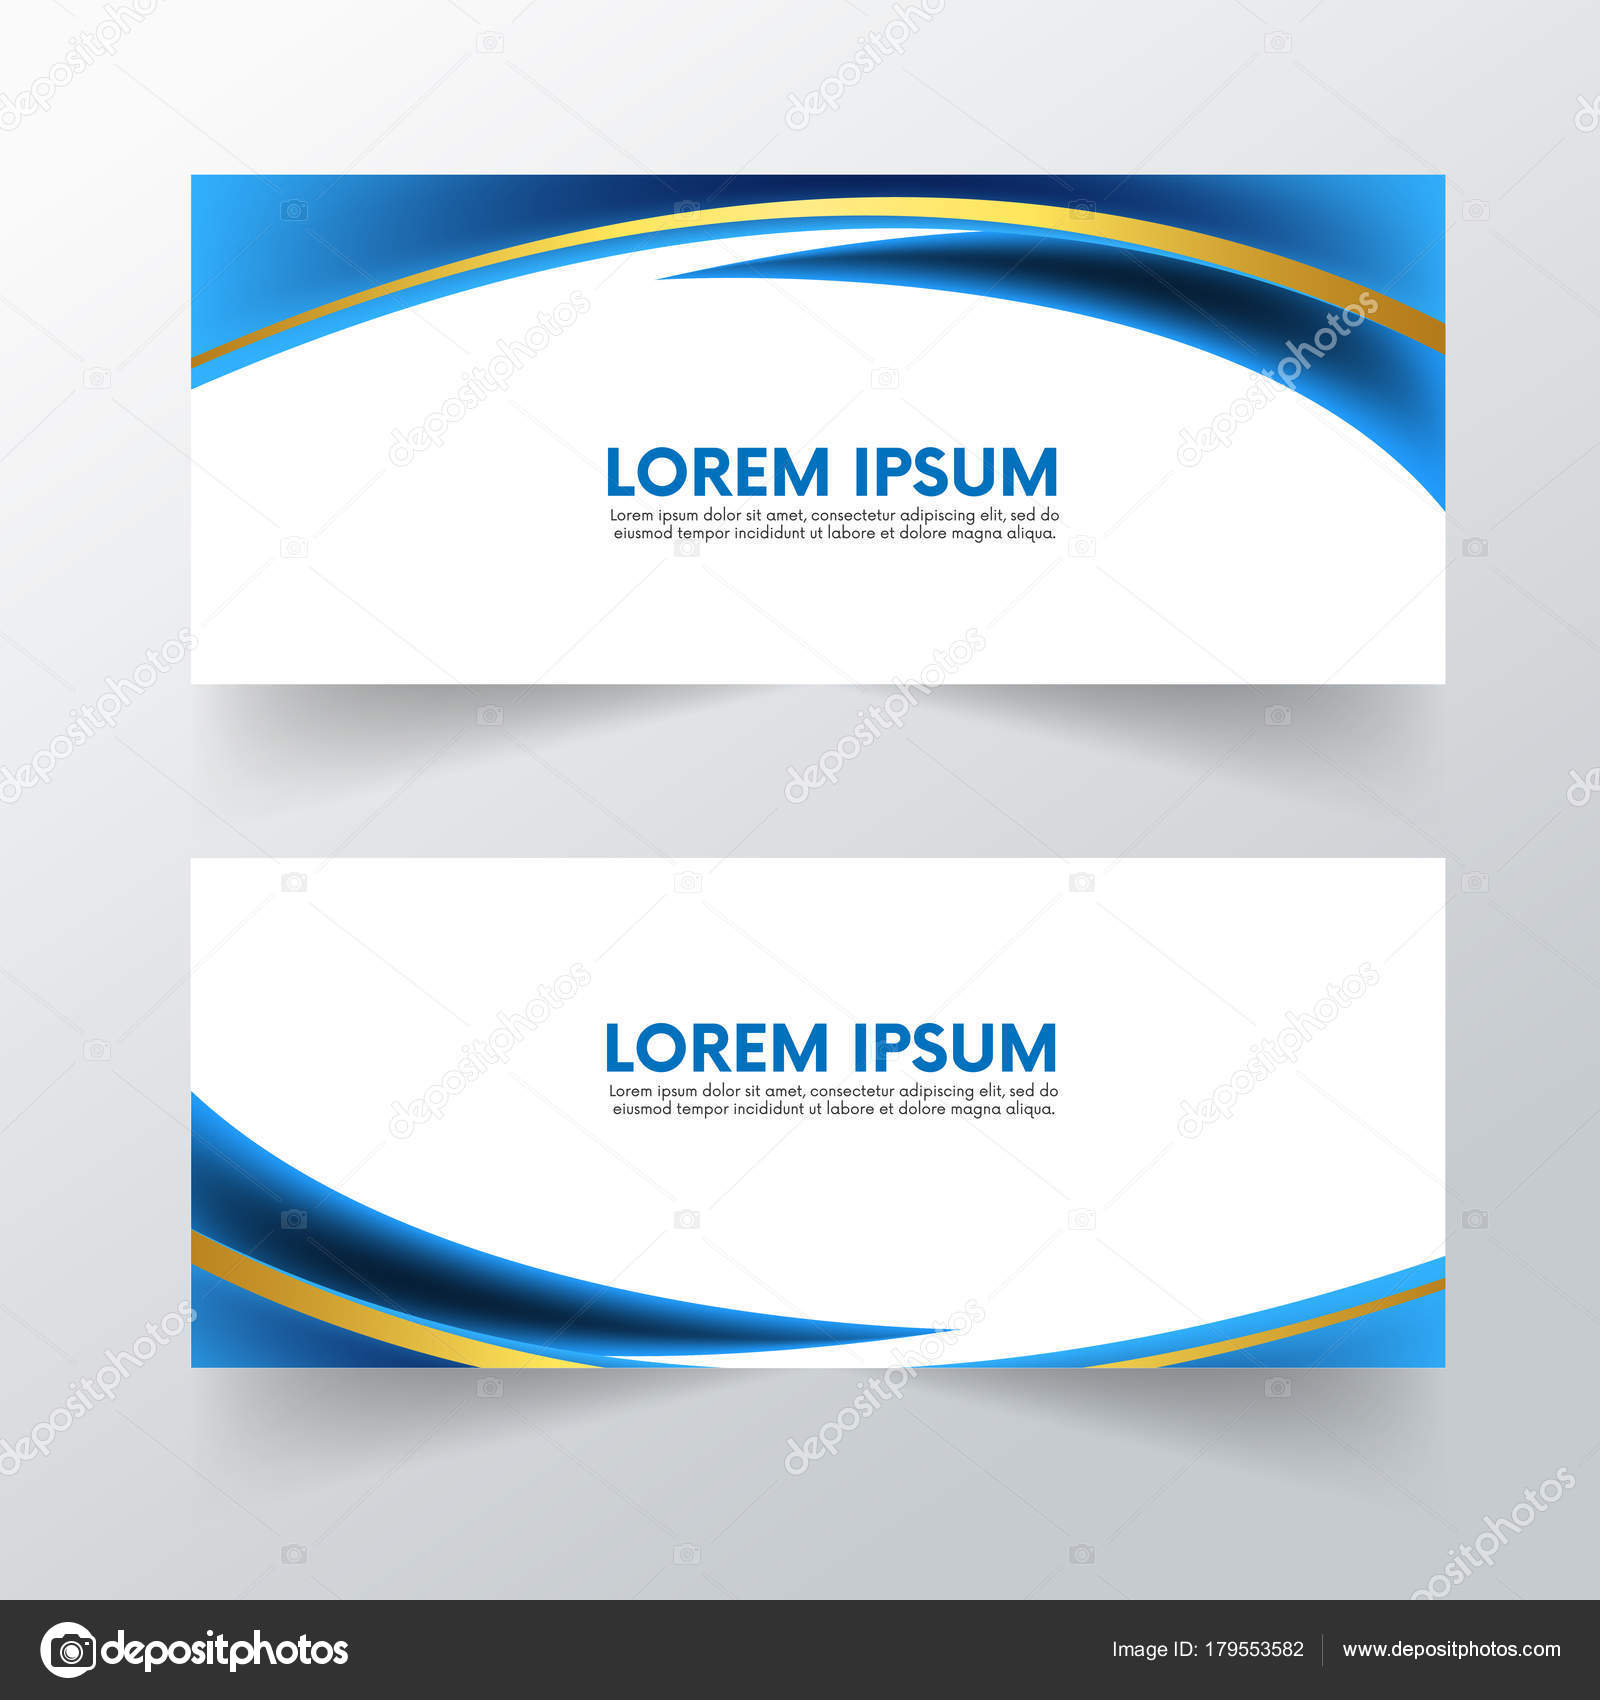 Banners Design Template Creative Design Brochure Flyer Background